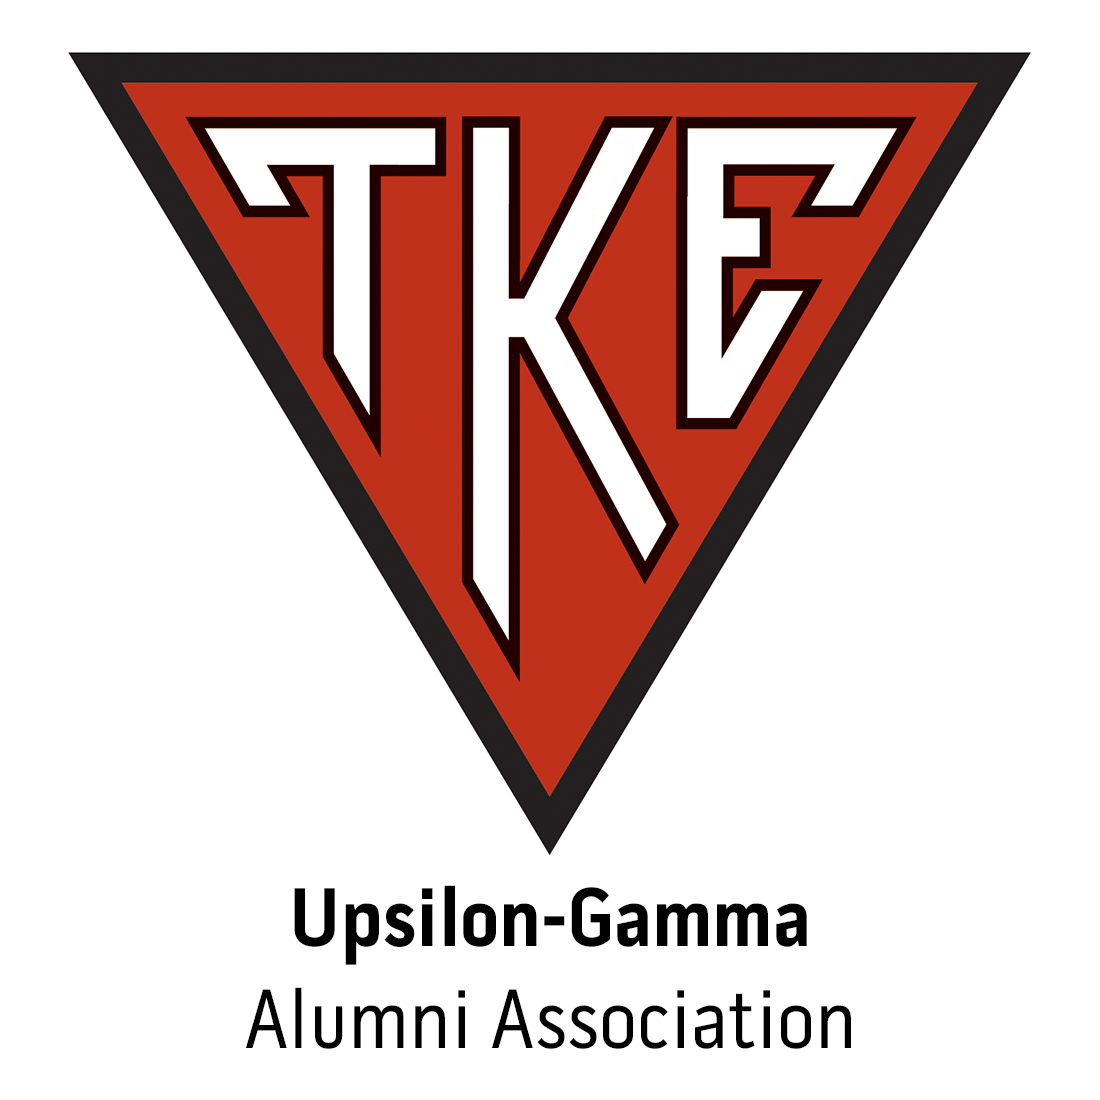 Upsilon-Gamma Alumni Association at University of Minnesota